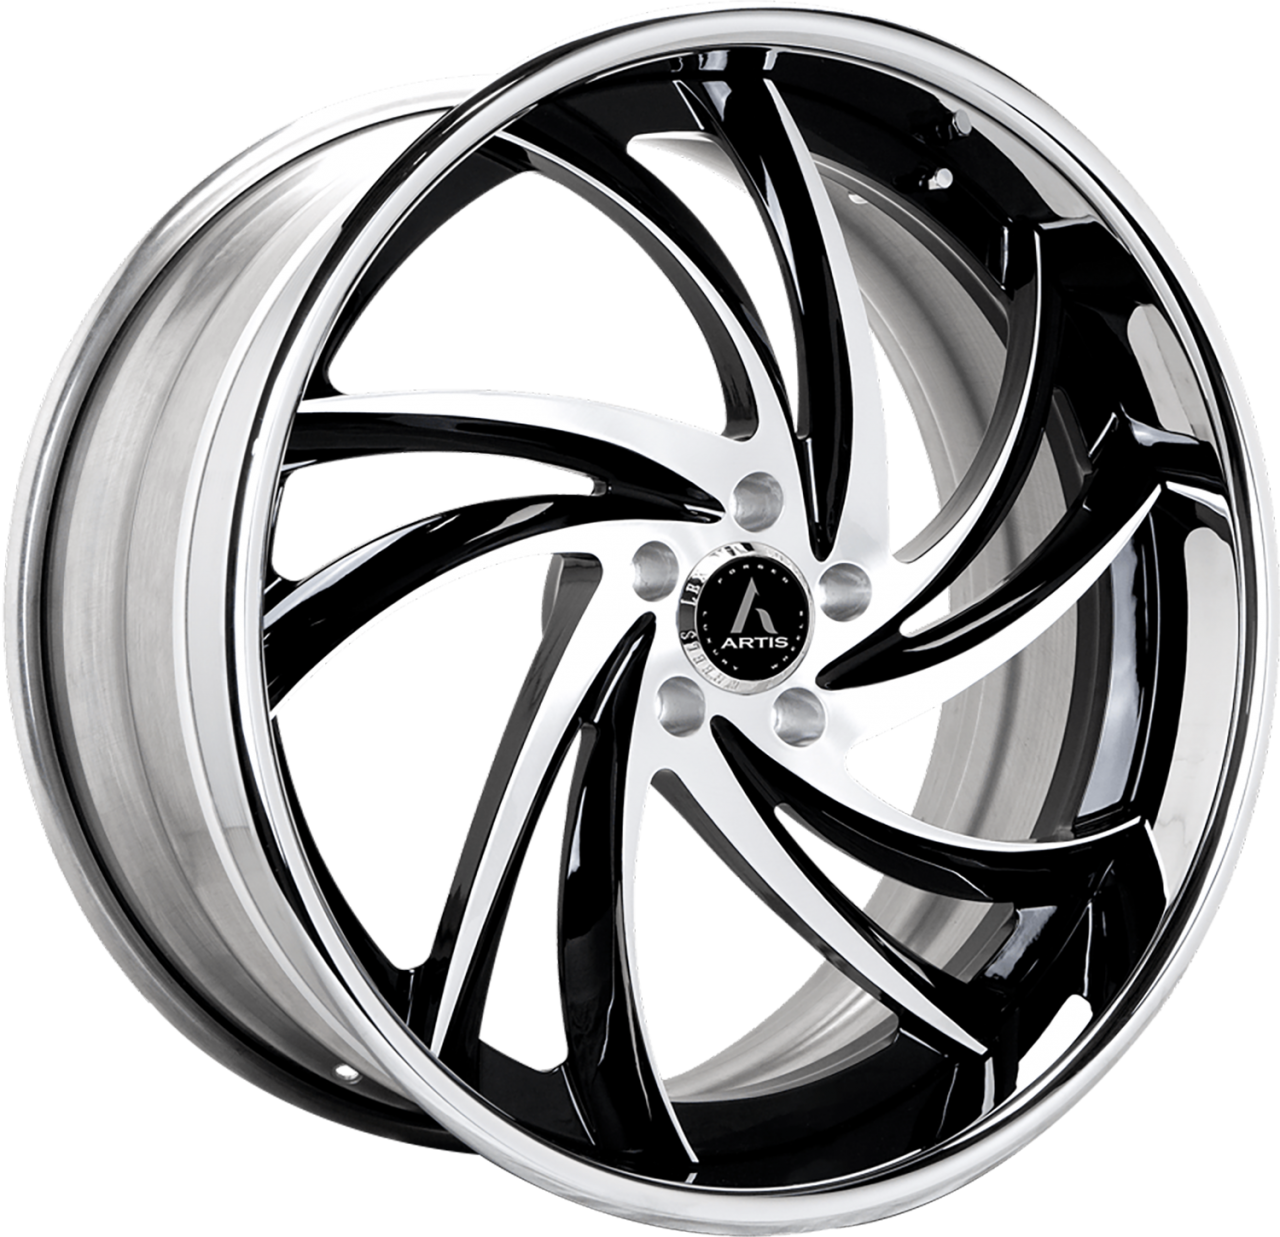 Artis Forged Twister-M wheel with Custom finish